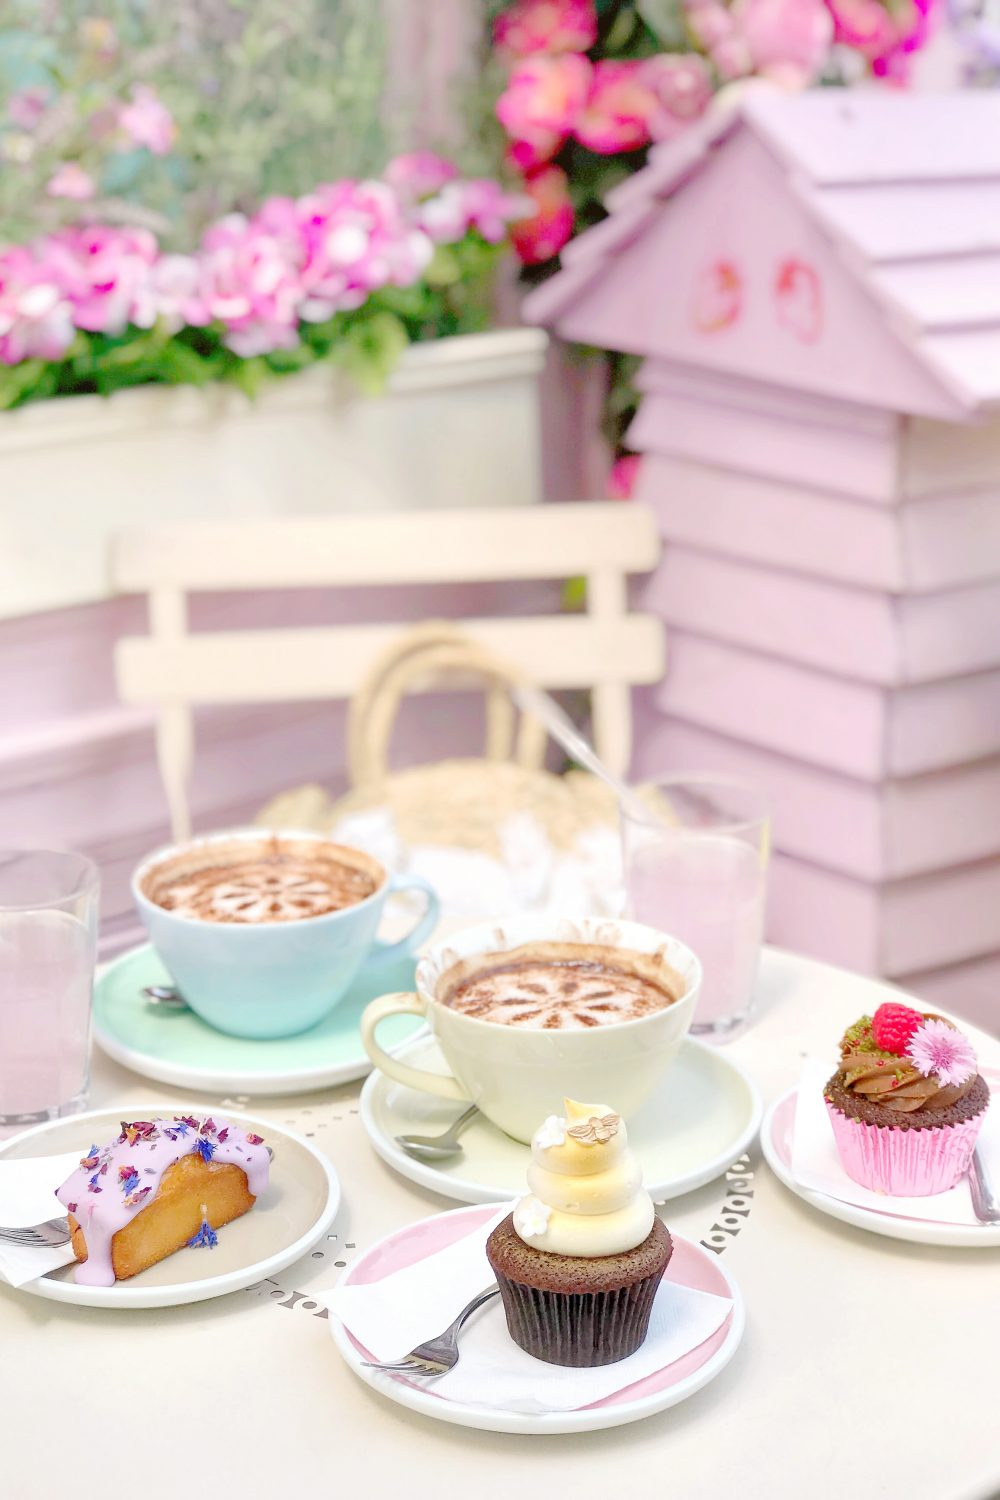 Sweet Summer Treats In Belgravia: Floral Blooms, Honey Hues & Pink Lemonade